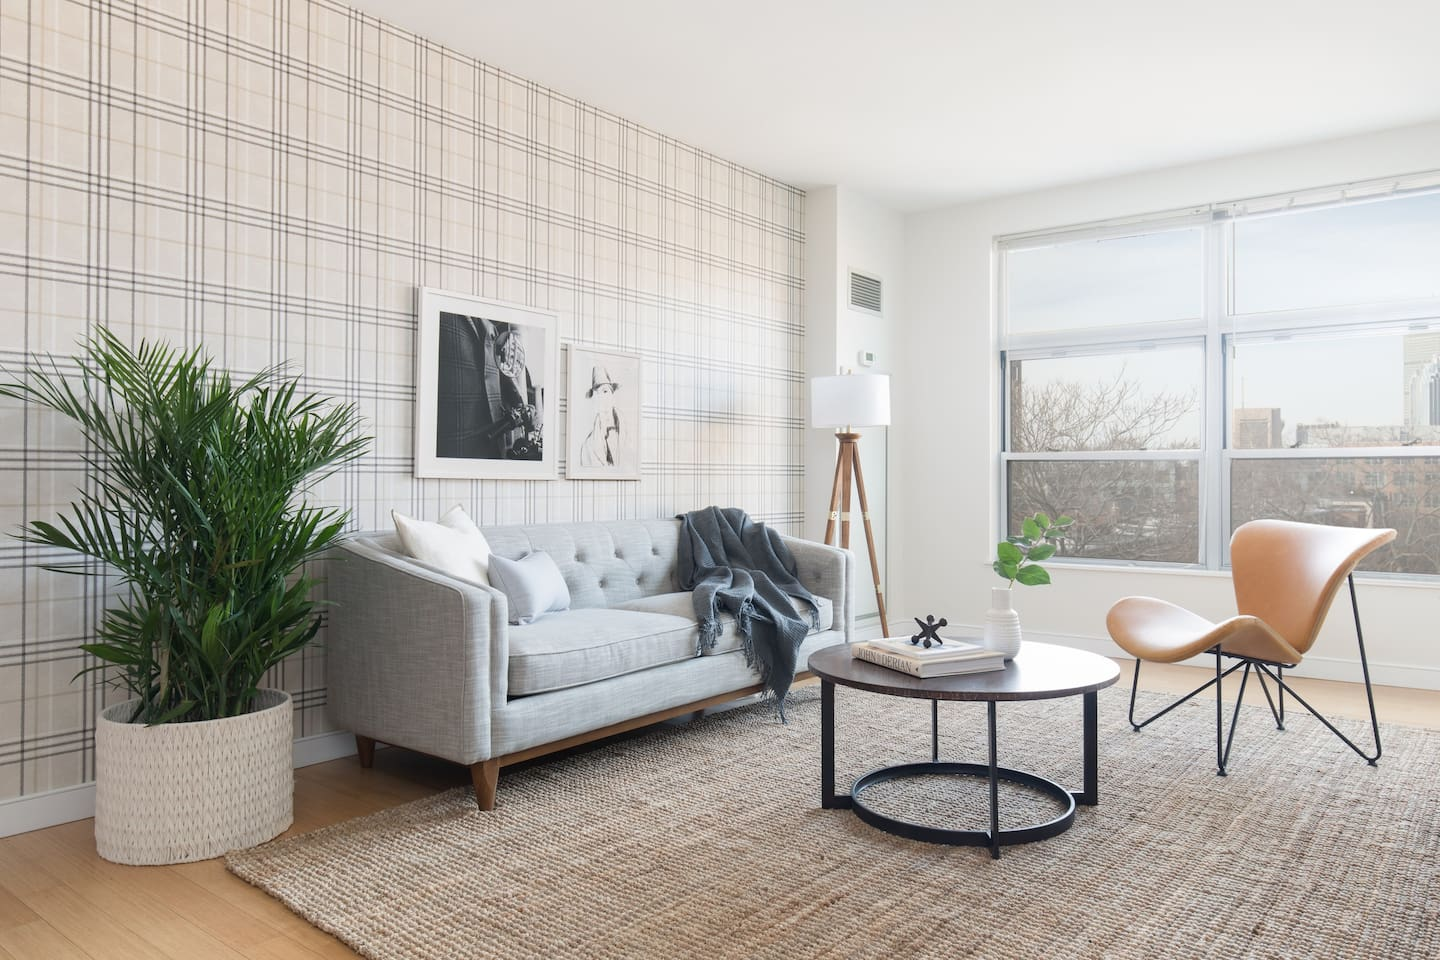 Elegant 2BR in South End by Sonder - Apartments for Rent in Boston ...